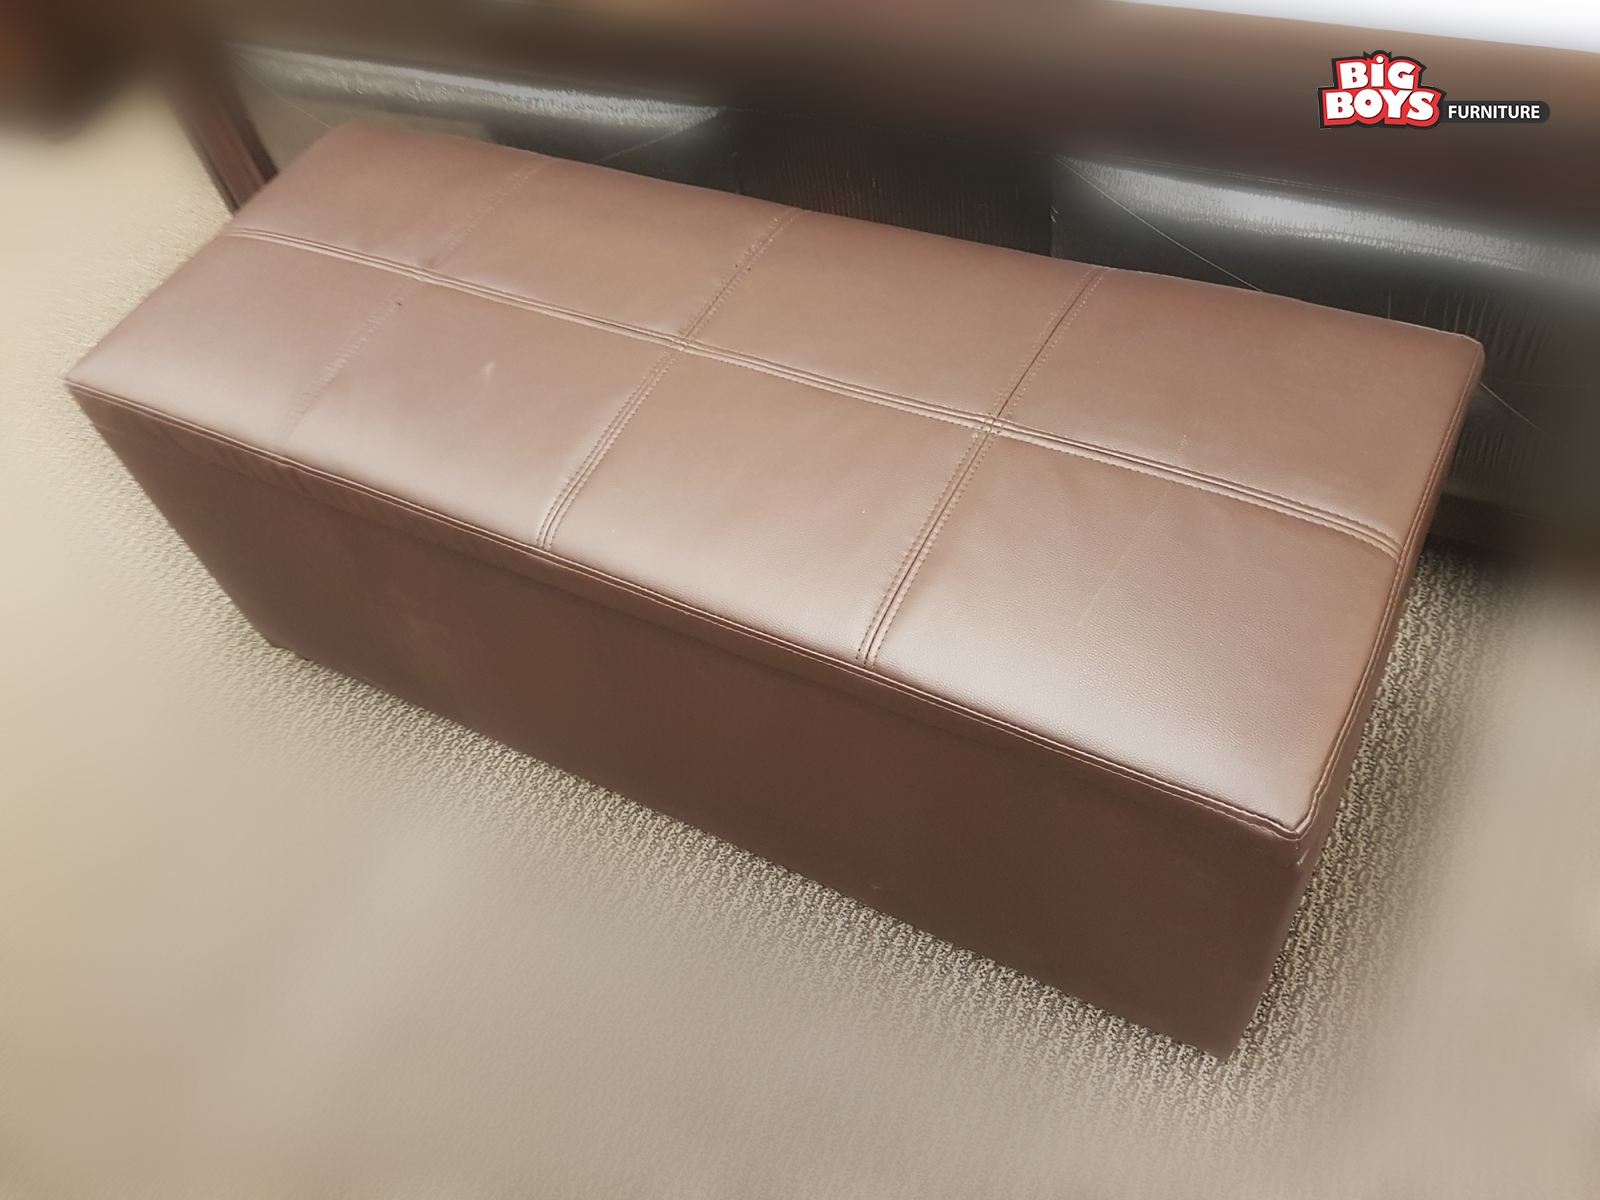 For best deals on ottomans and benches visit us at Big Boys Furniture Delta/Surrey